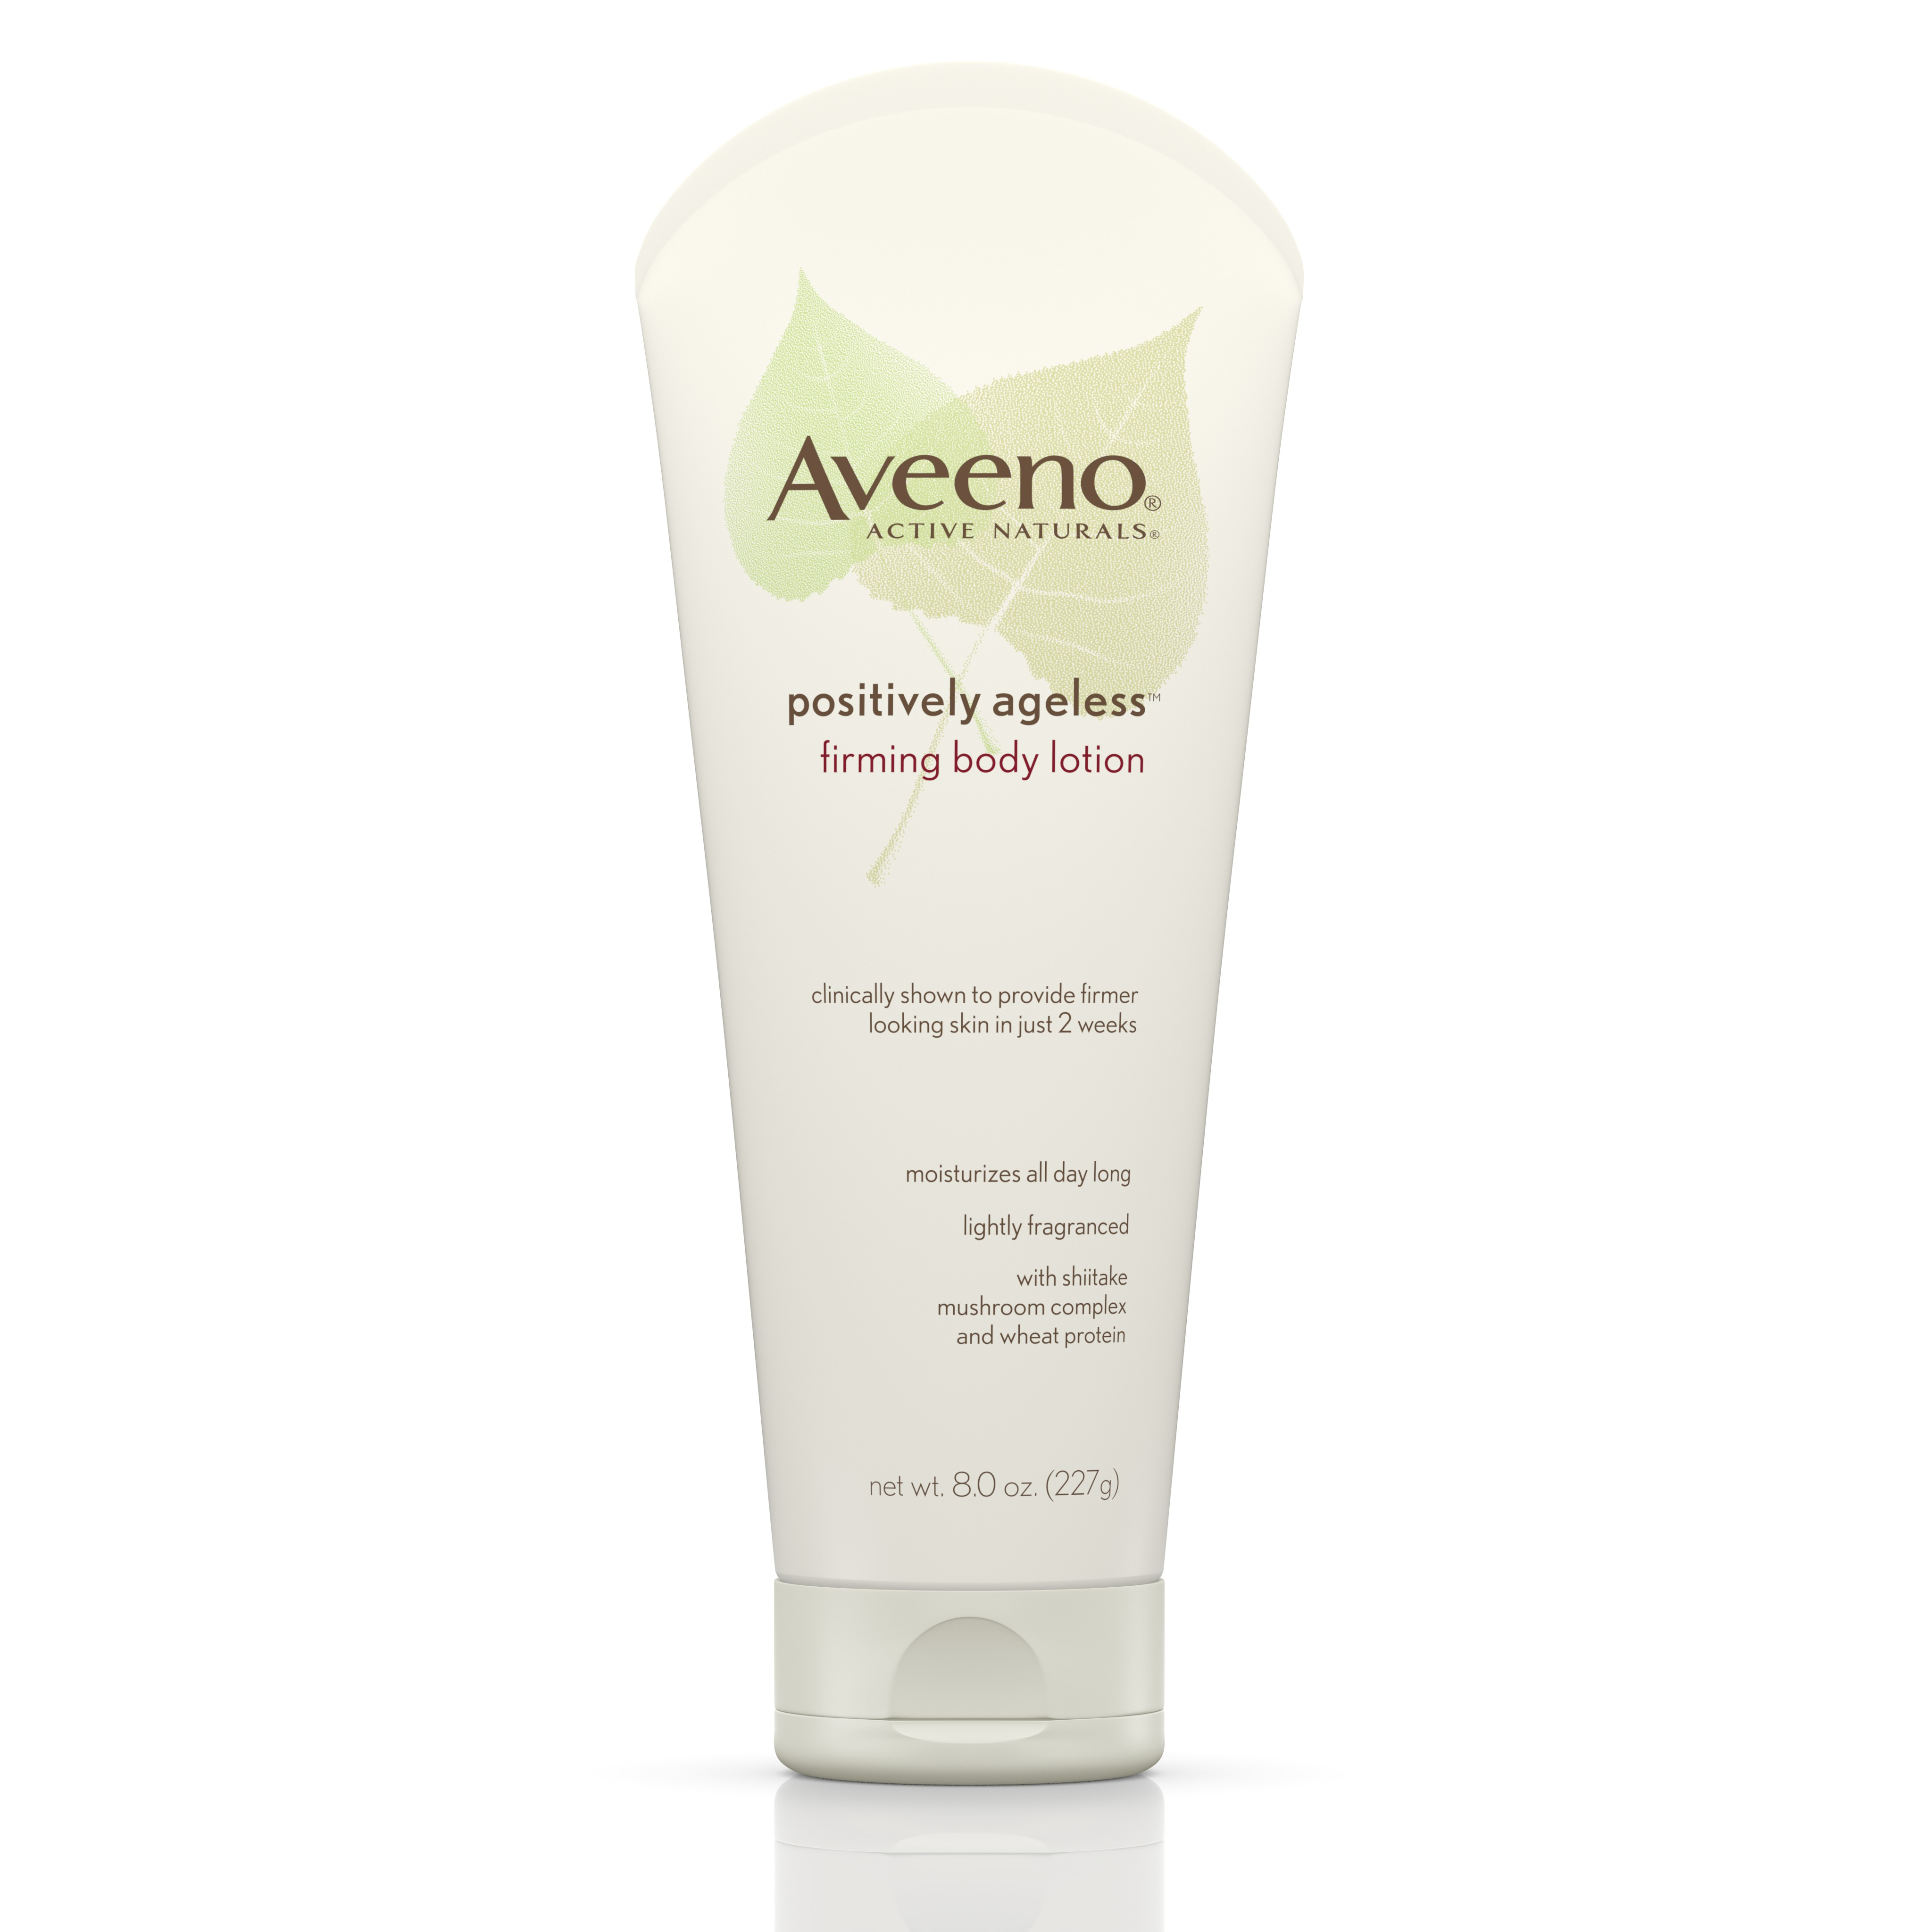 Aveeno Positively Ageless Anti-Aging Firming Body Lotion, 8 Oz - Walmart.com